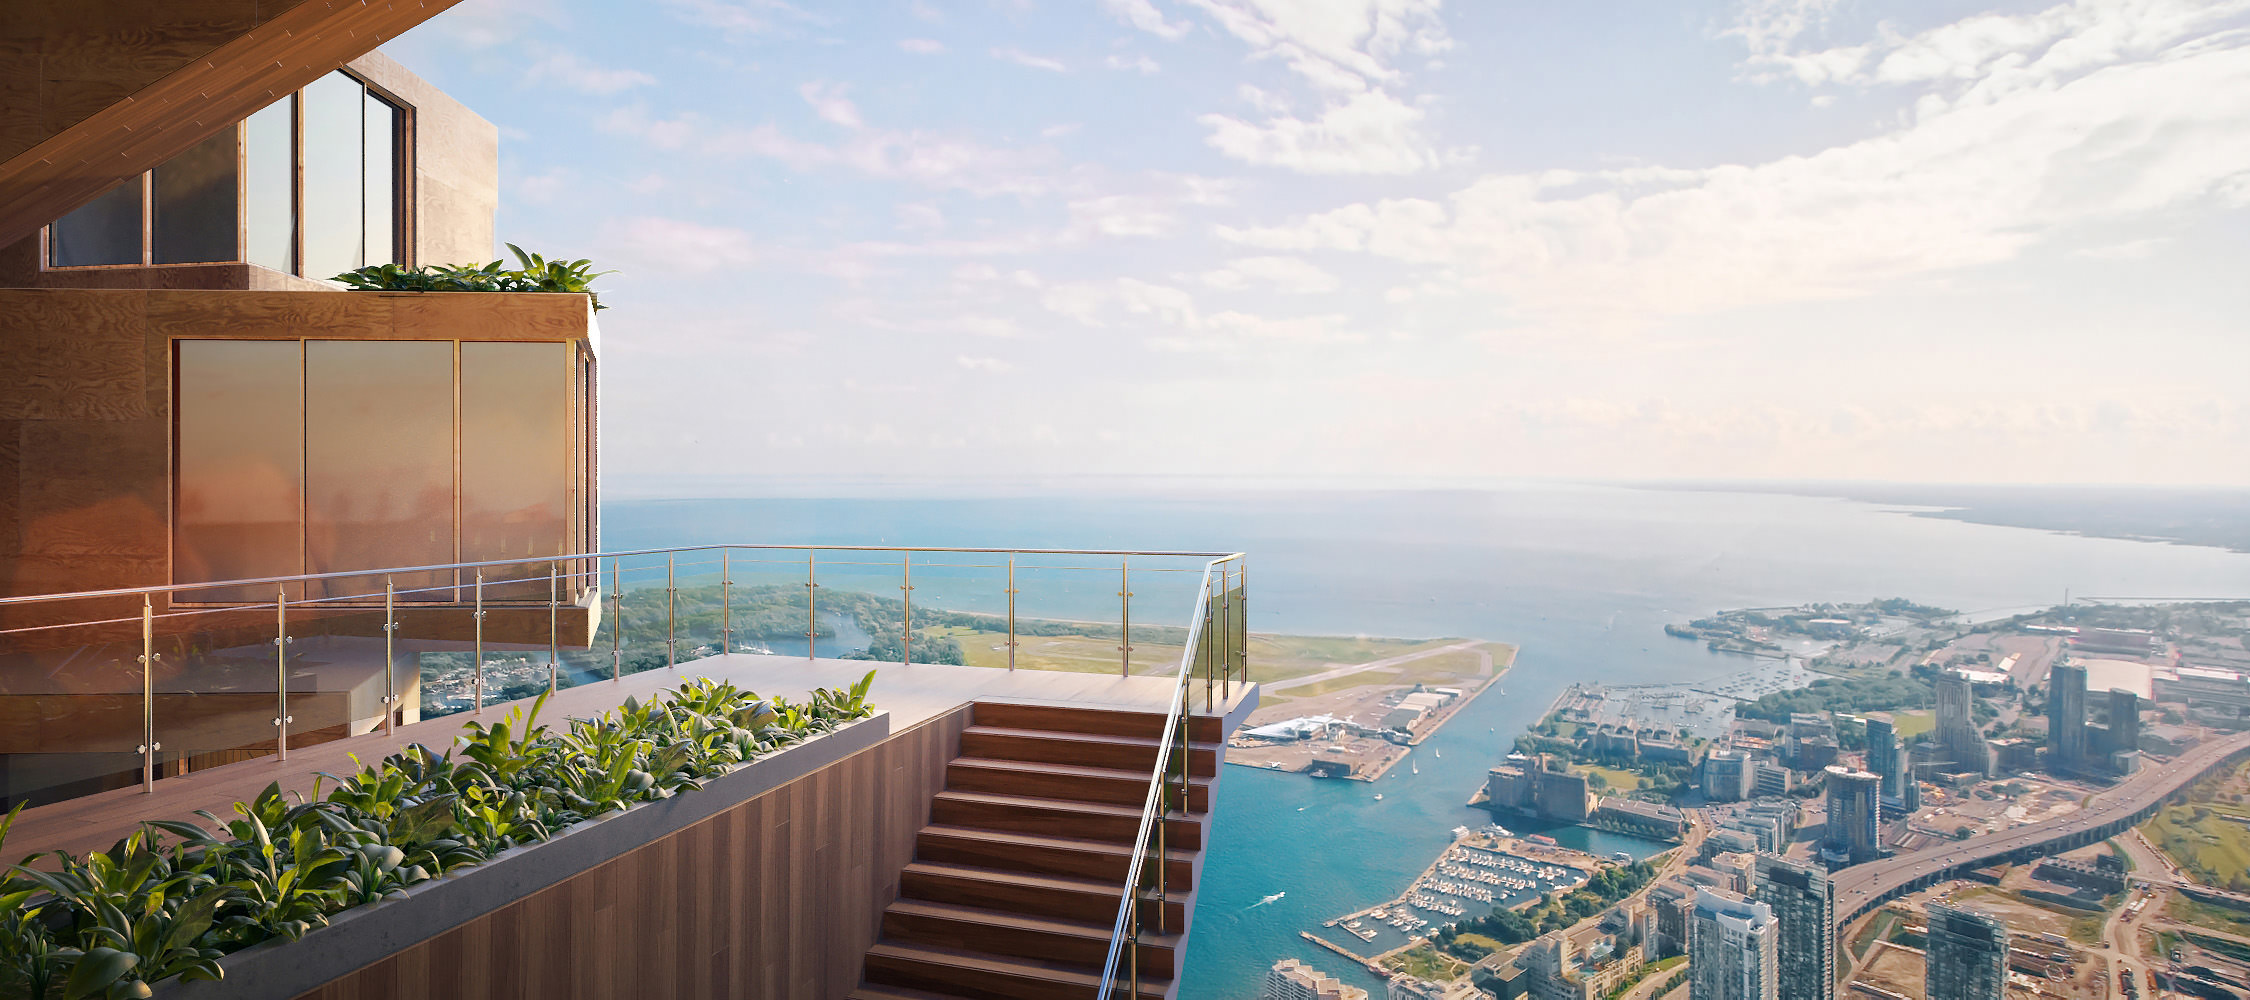 Photorealistic visualization of the area outside the wooden condominium with a panoramic view over the lake